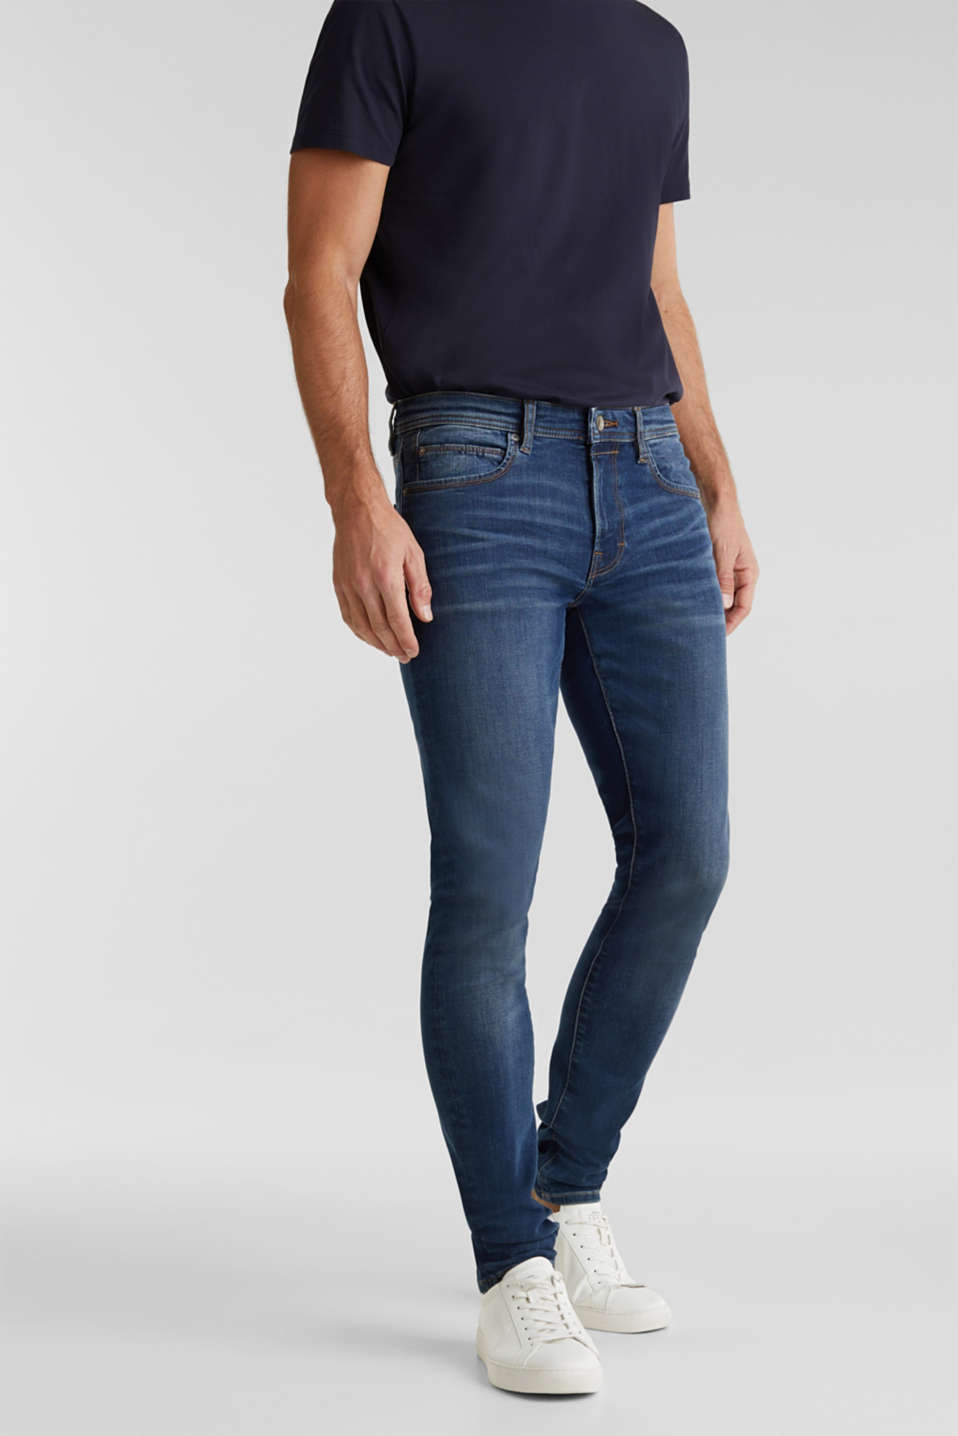 Esprit - Superstretch-Jeans mit Wrinkle-Effekt